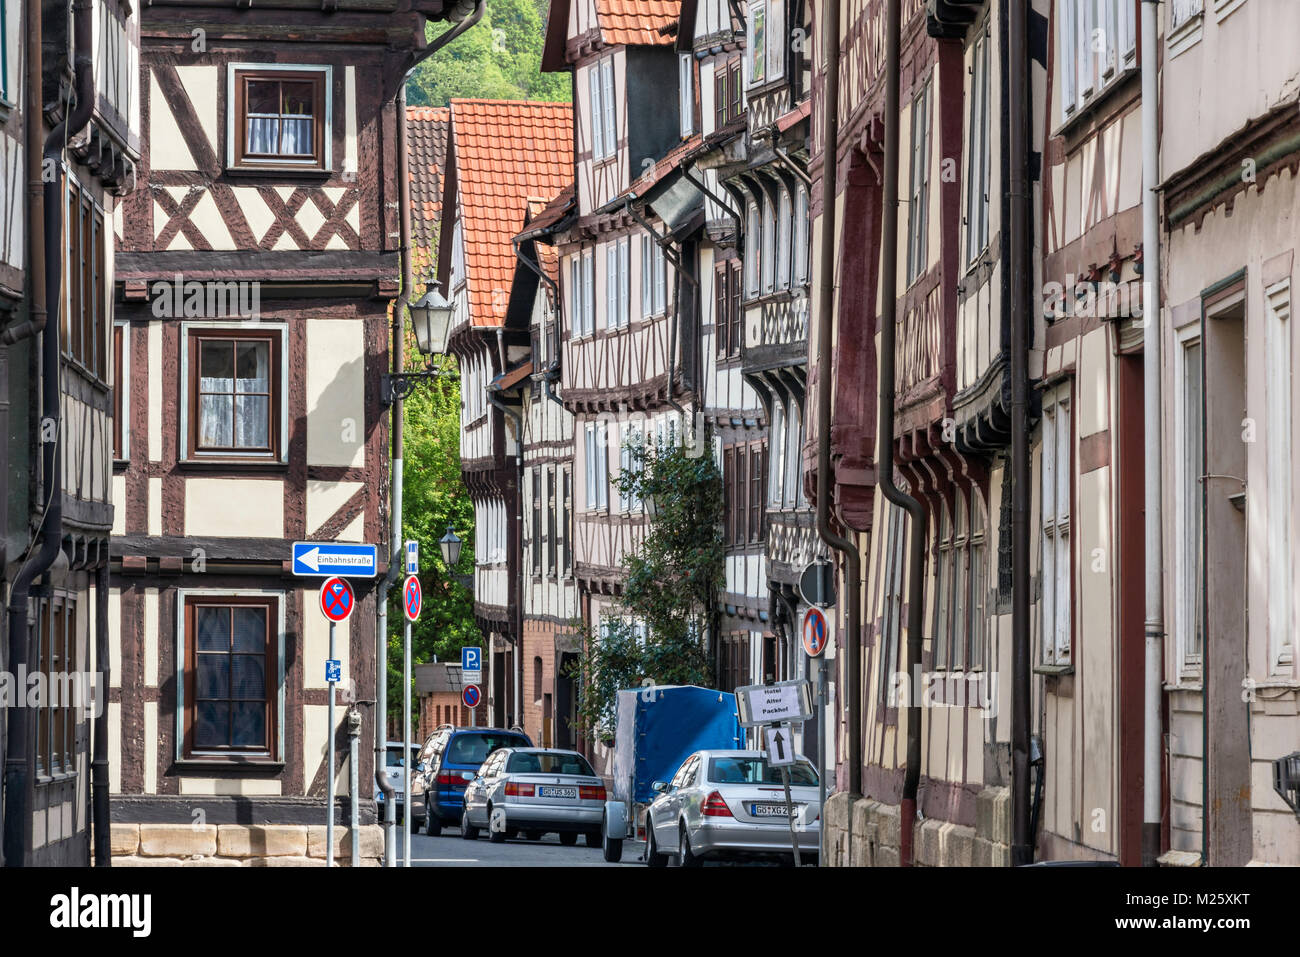 Half-timbered houses at Hinter der Stadtmauer, street in Hann Munden, Lower Saxony, Germany Stock Photo